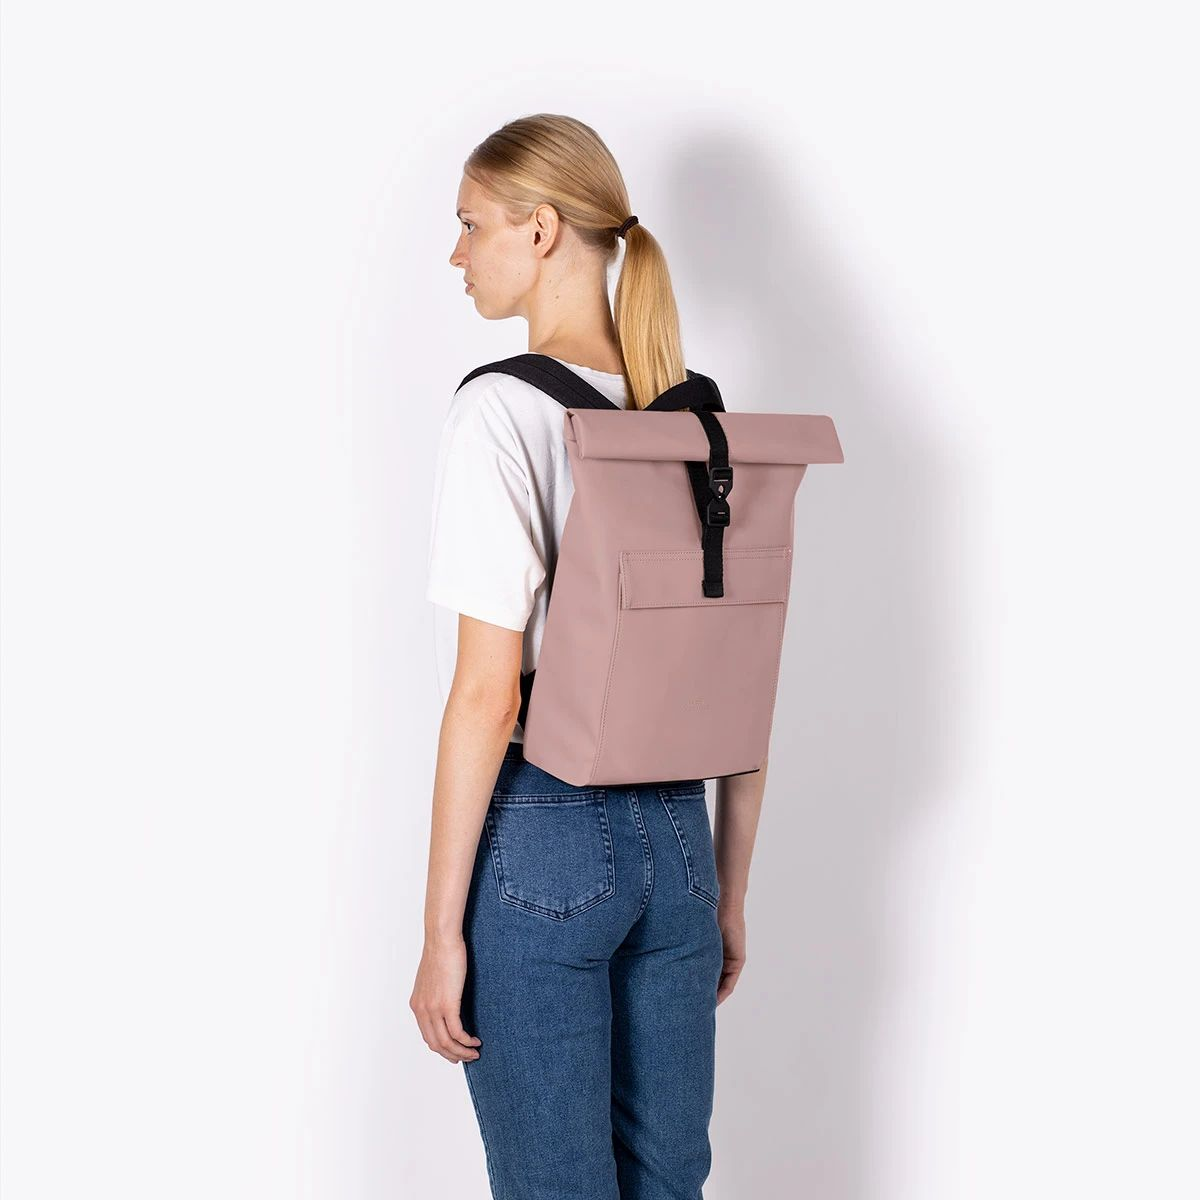 UA_Jasper-Mini-Backpack_Lotus-Series_Rose_12_2560x